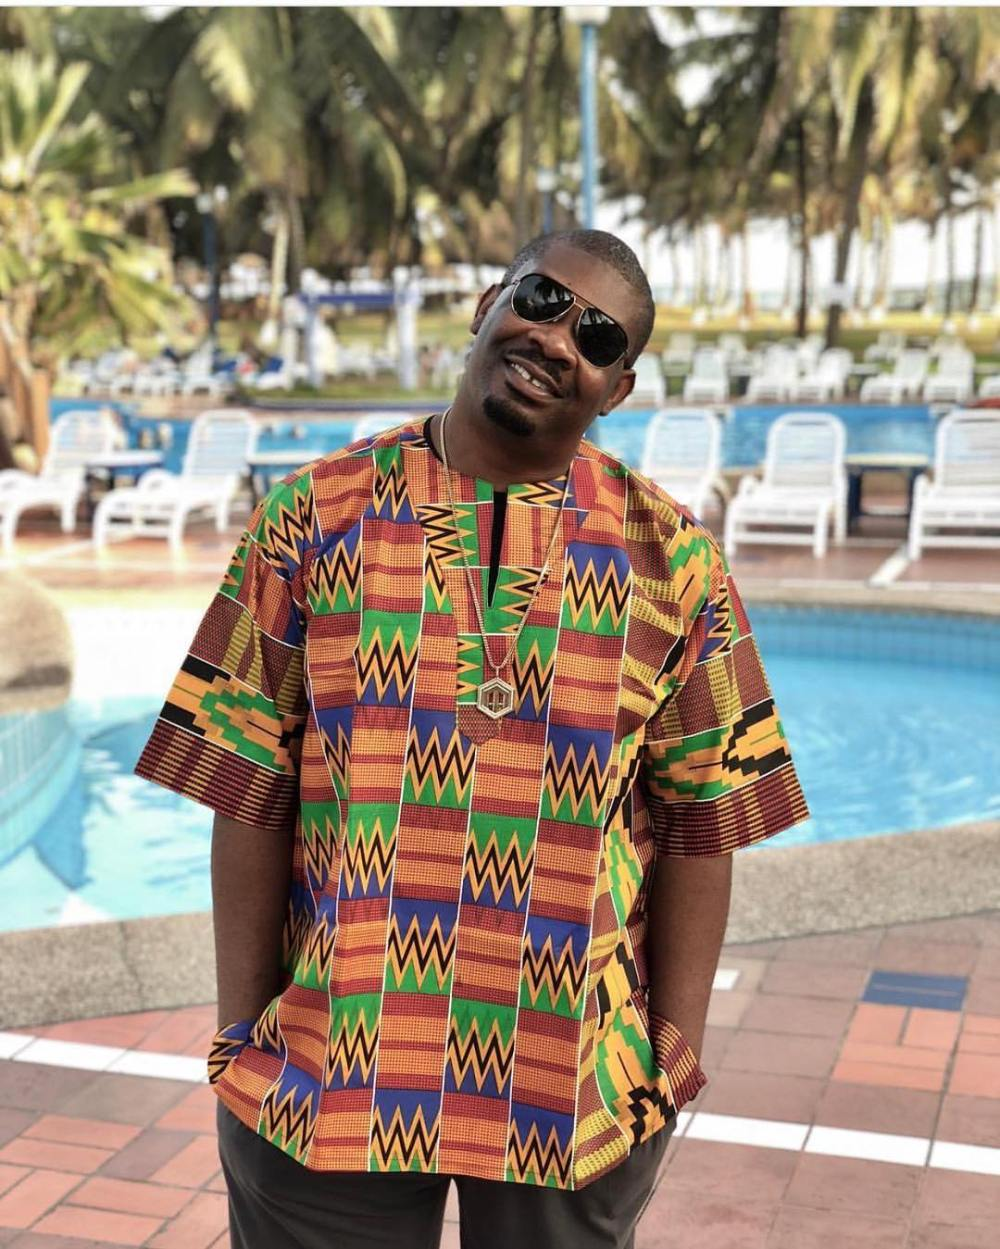 don jazzy wearing dashiki